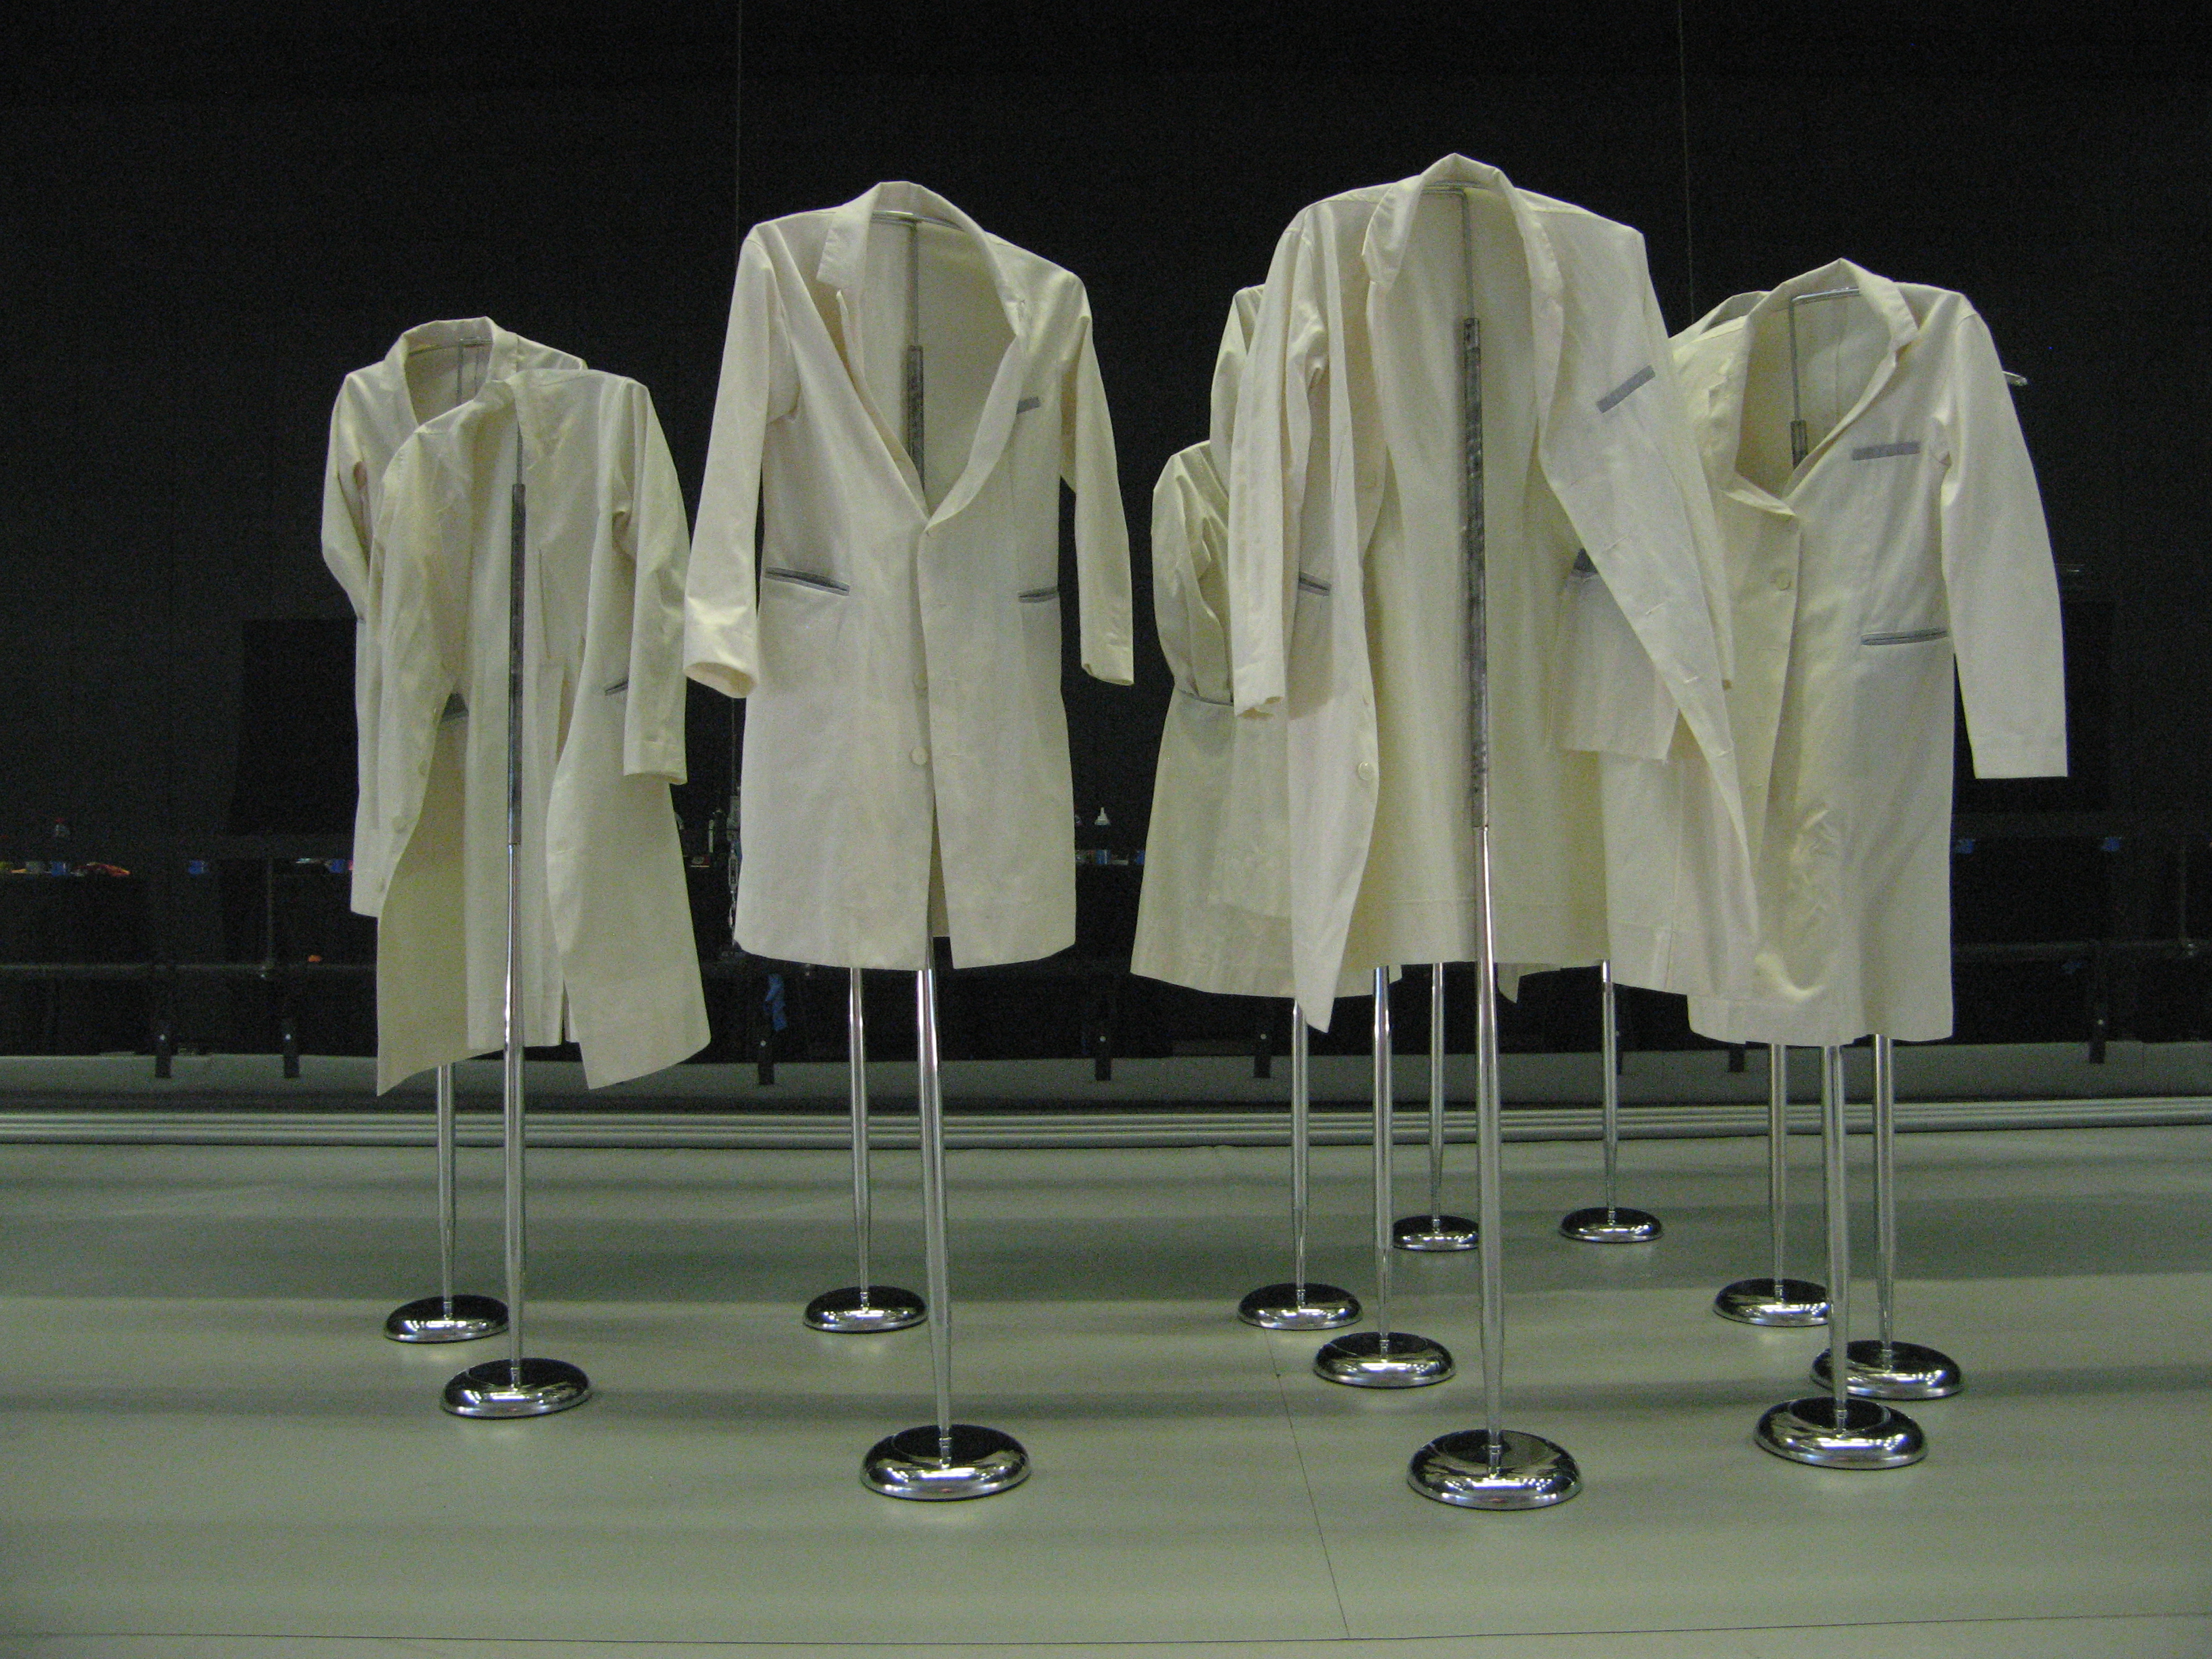 Image of lab coats on hangers.